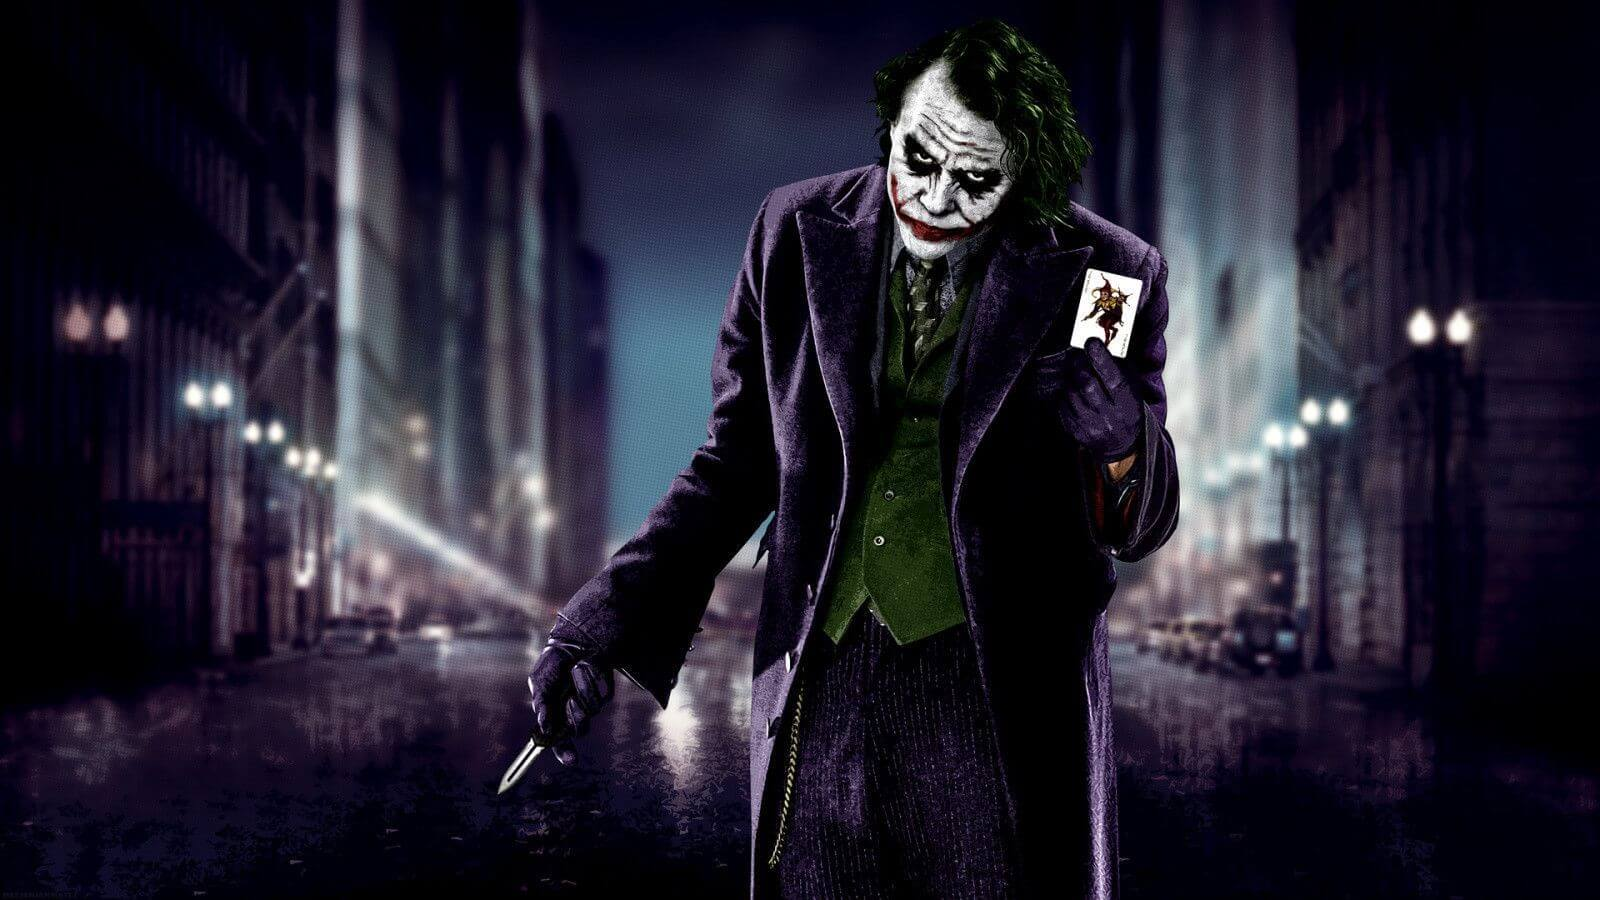 Download Joker Wallpaper HD Images For Your 4K UHD 5K 8K Ultra Desktop Background Monitors Android Mobiles Apple Iphone Laptop Screen And Tablets